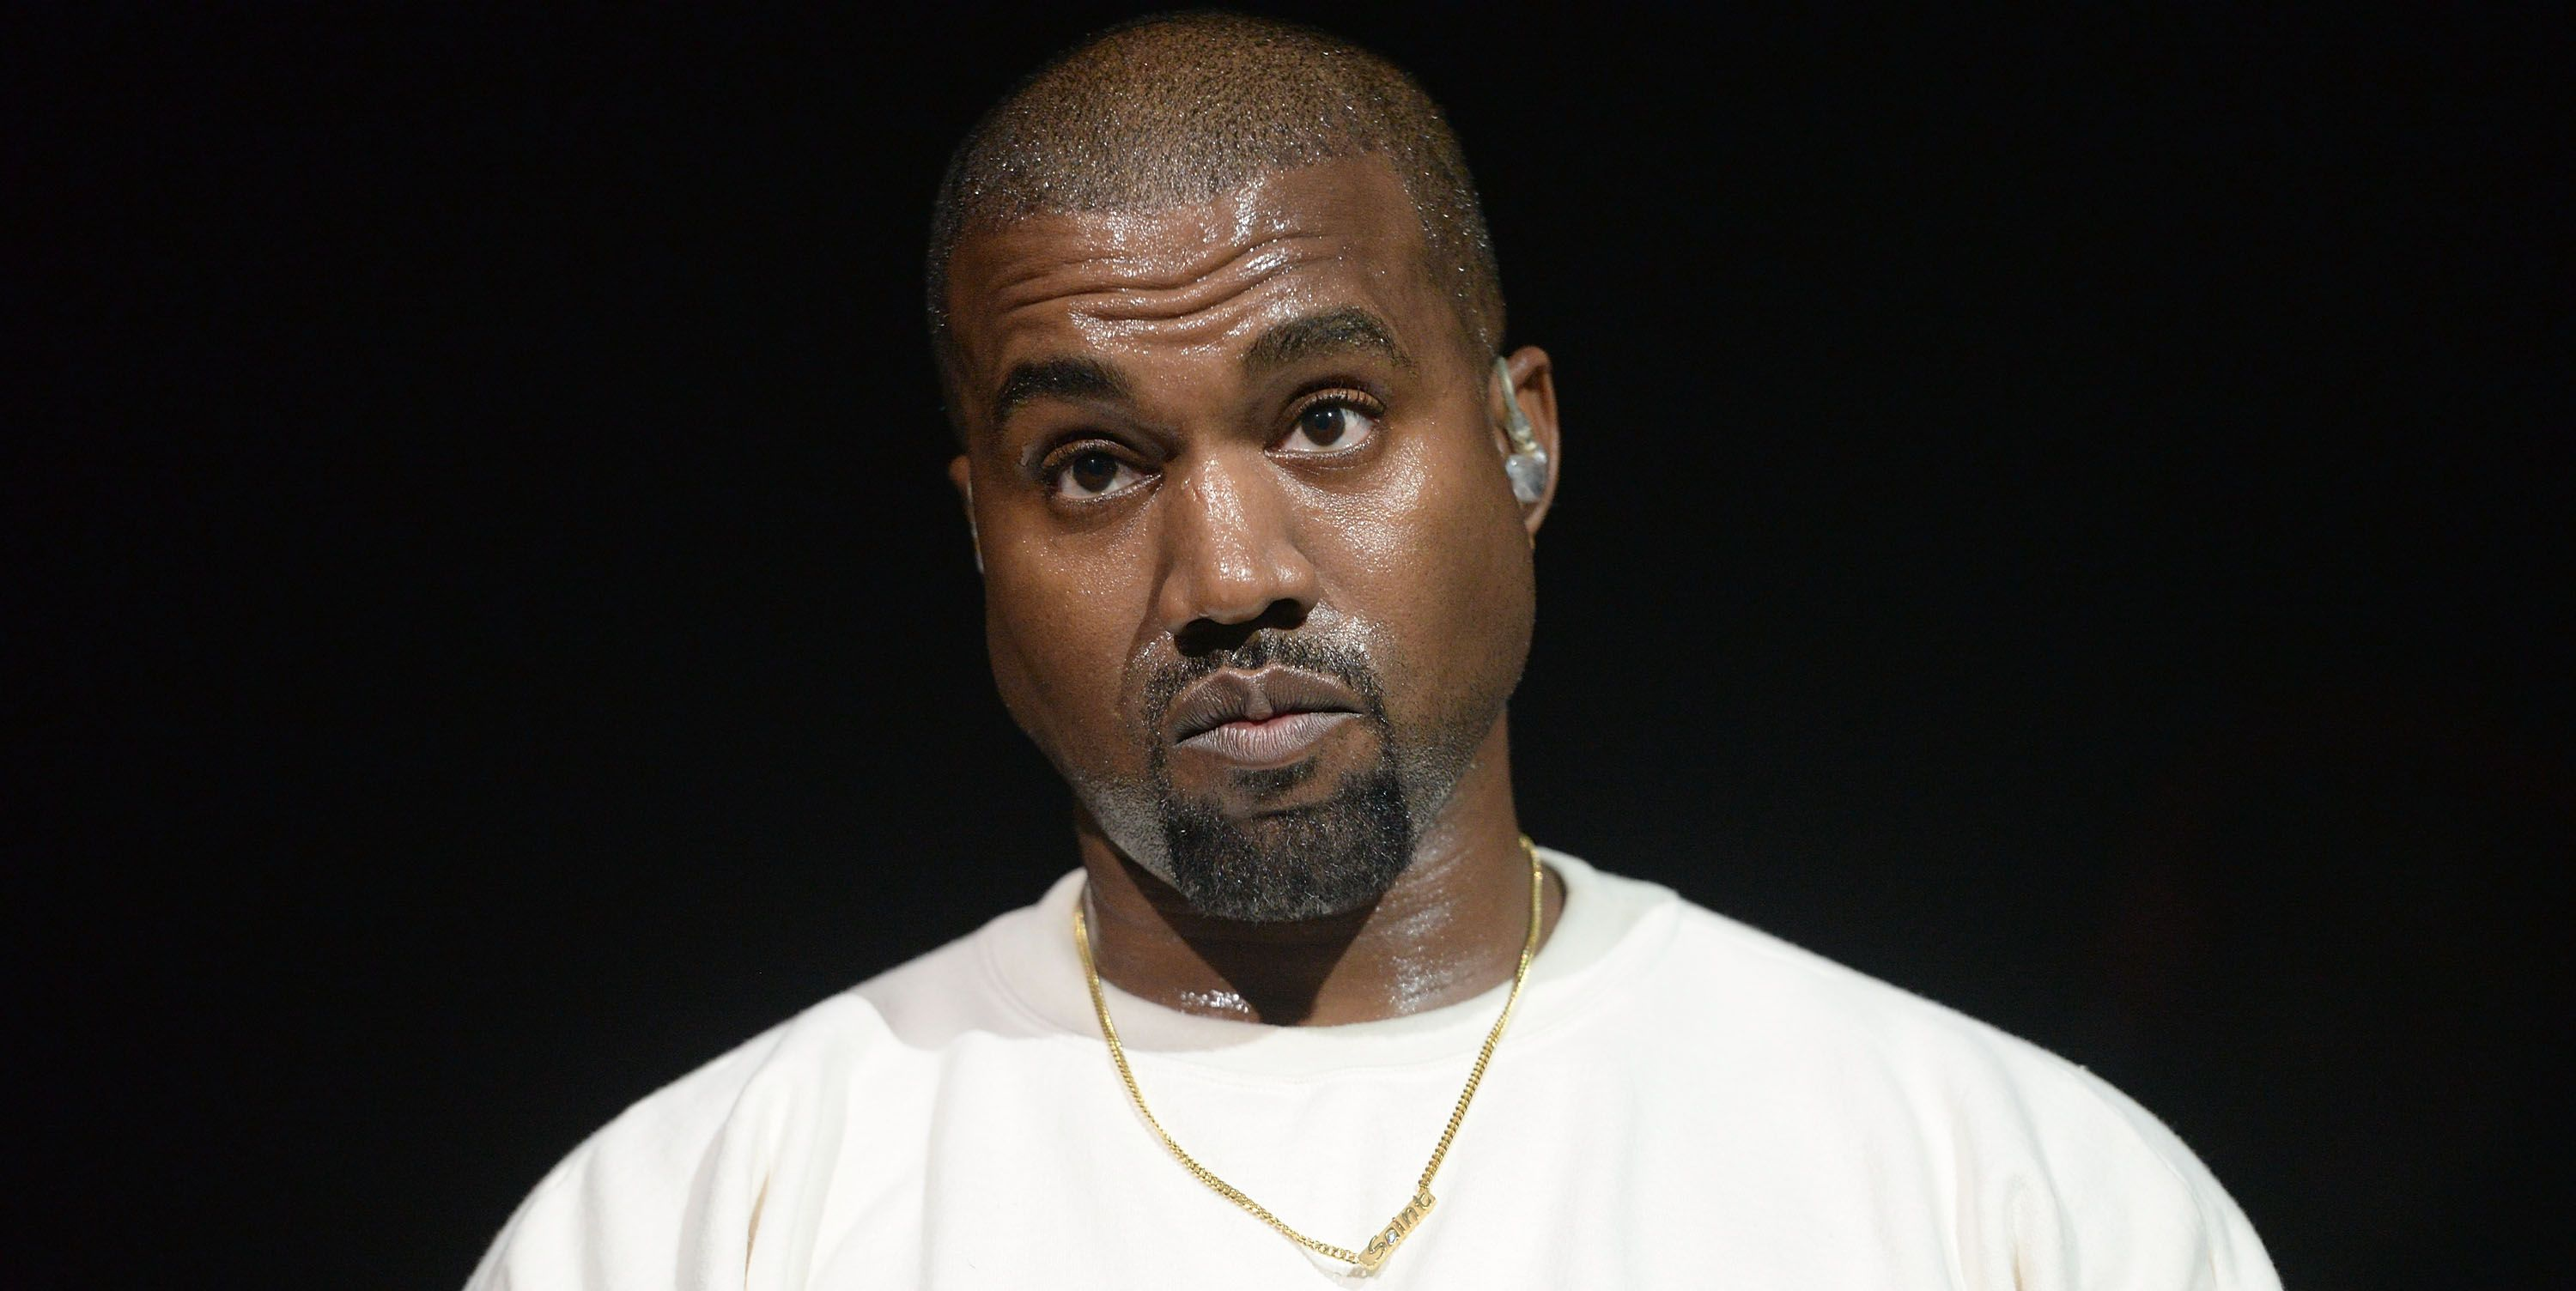 Kanye West 'would happily never speak to Tristan Thompson or Jordyn Woods again', apparently